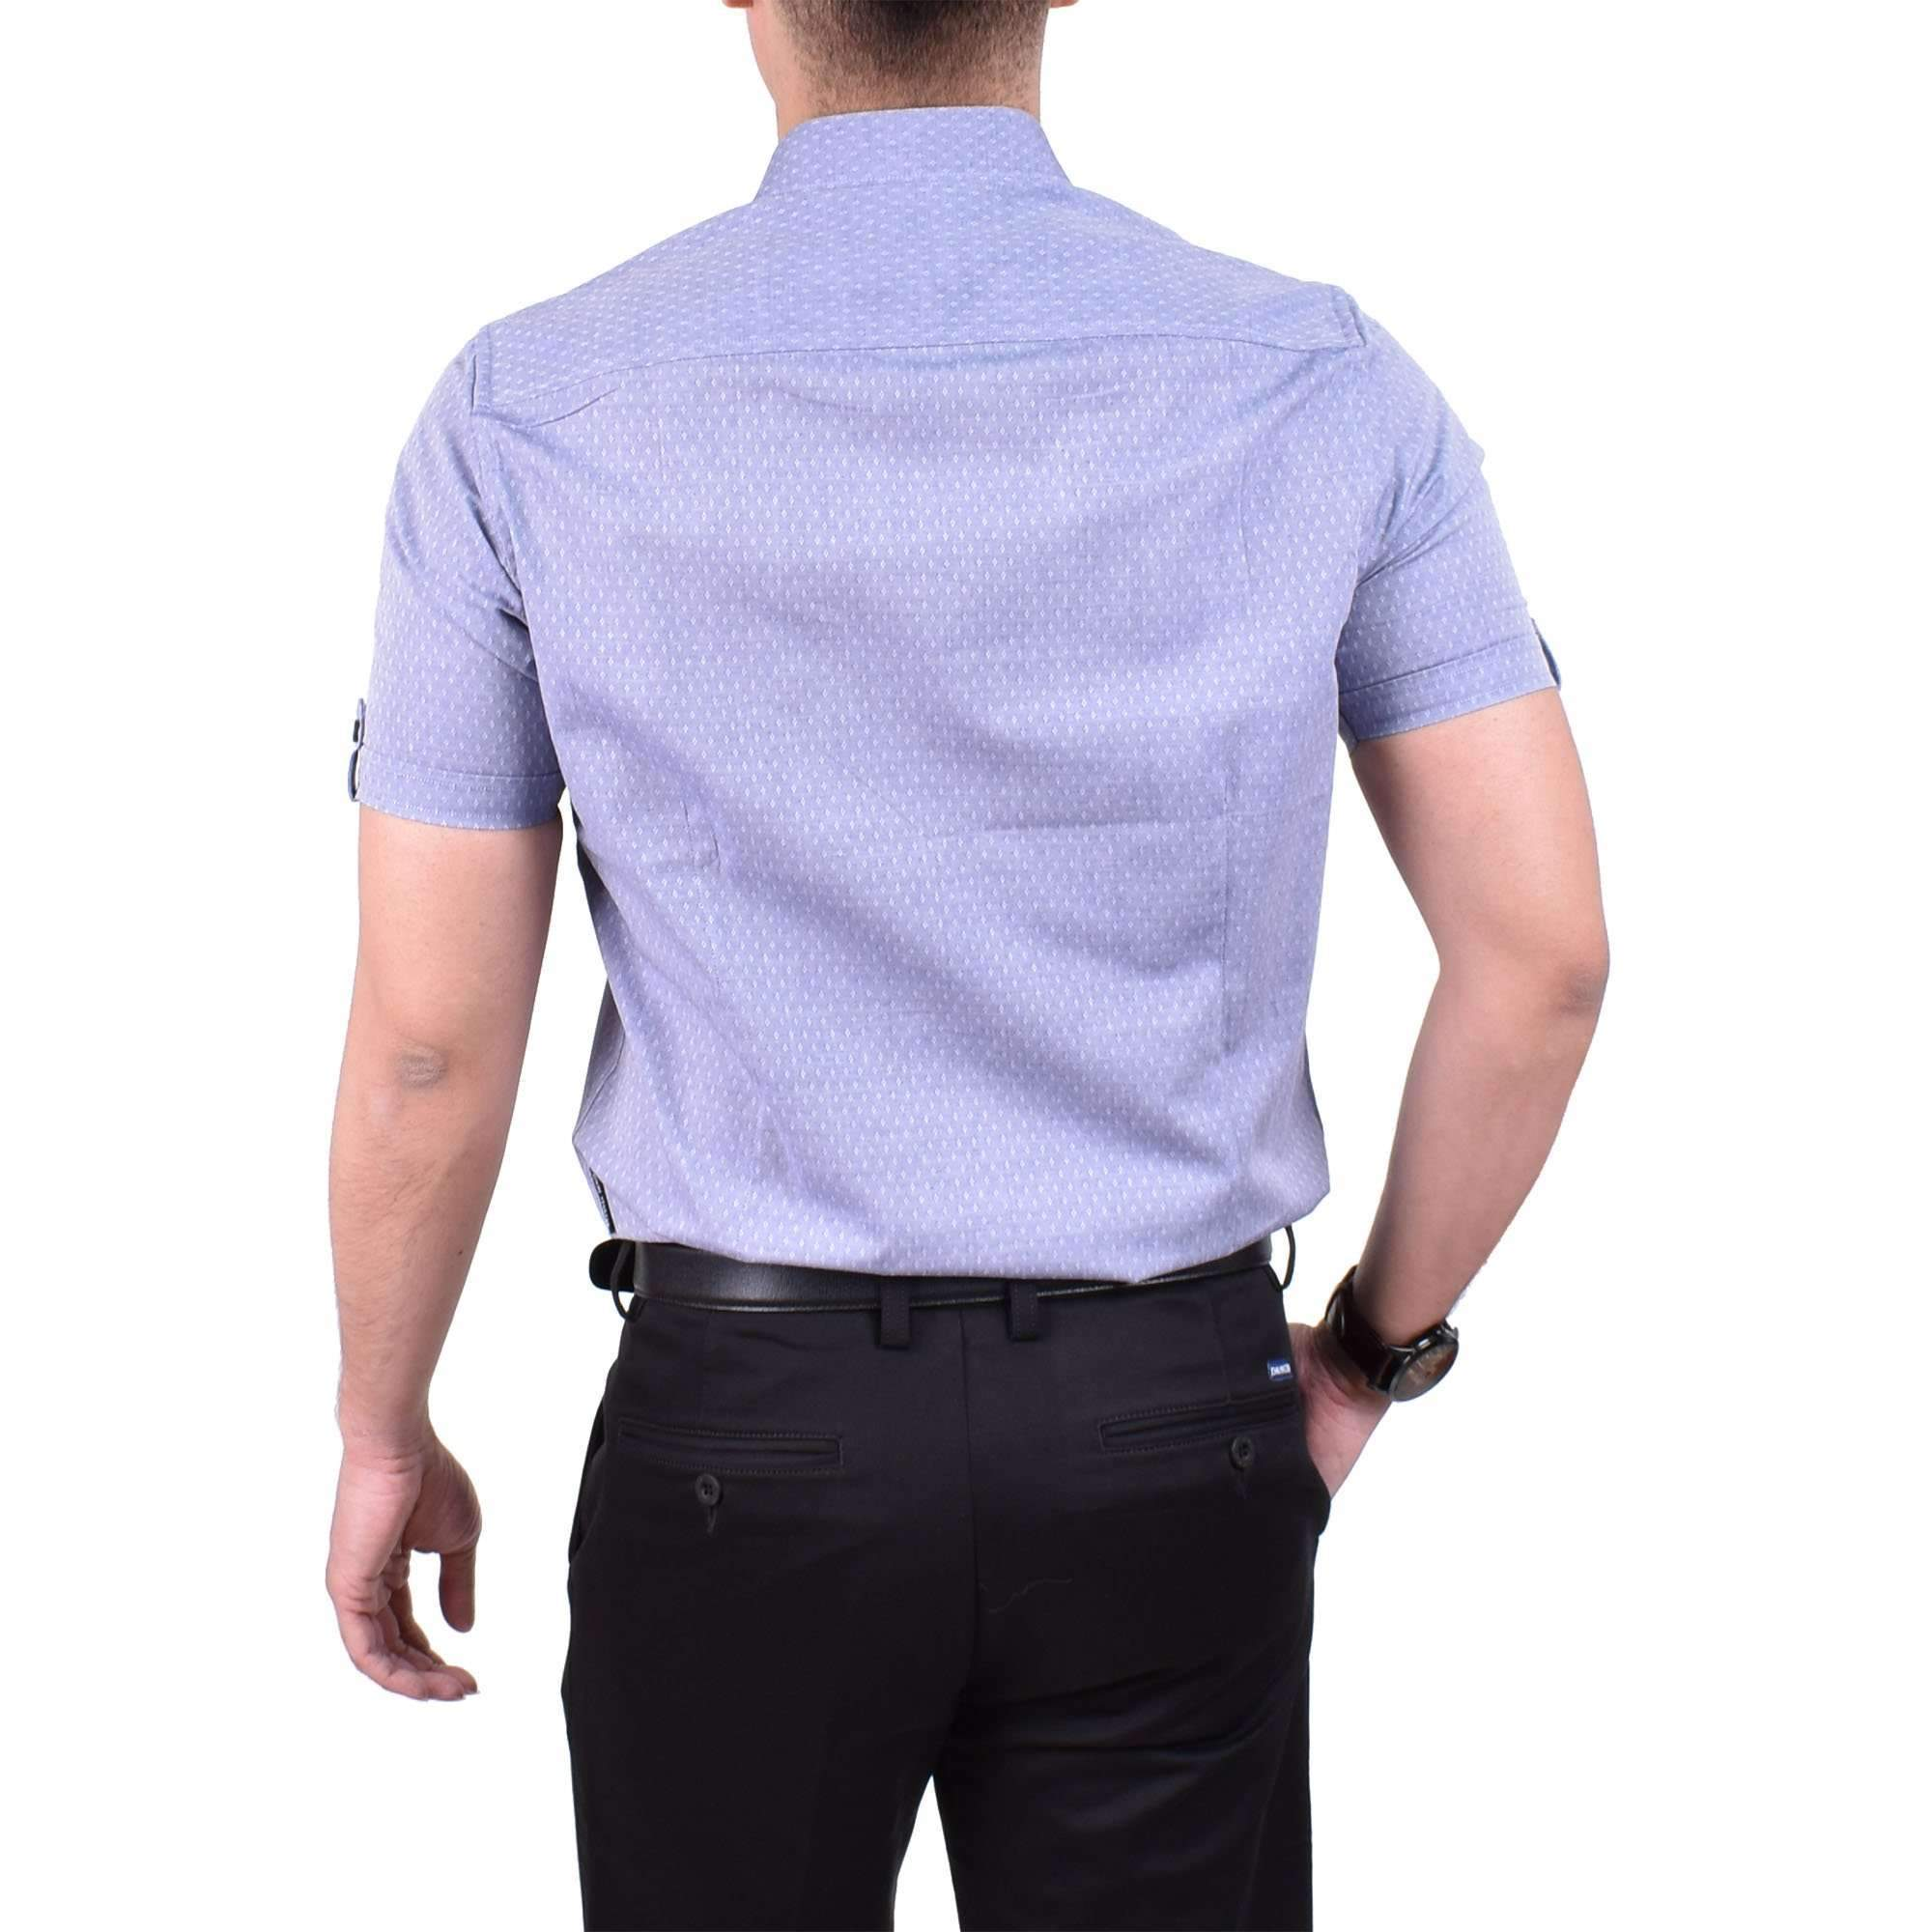 John Master Casual Shirt Short Sleeve Dark Blue 7067005 : Buy John Master online at CMG.MY